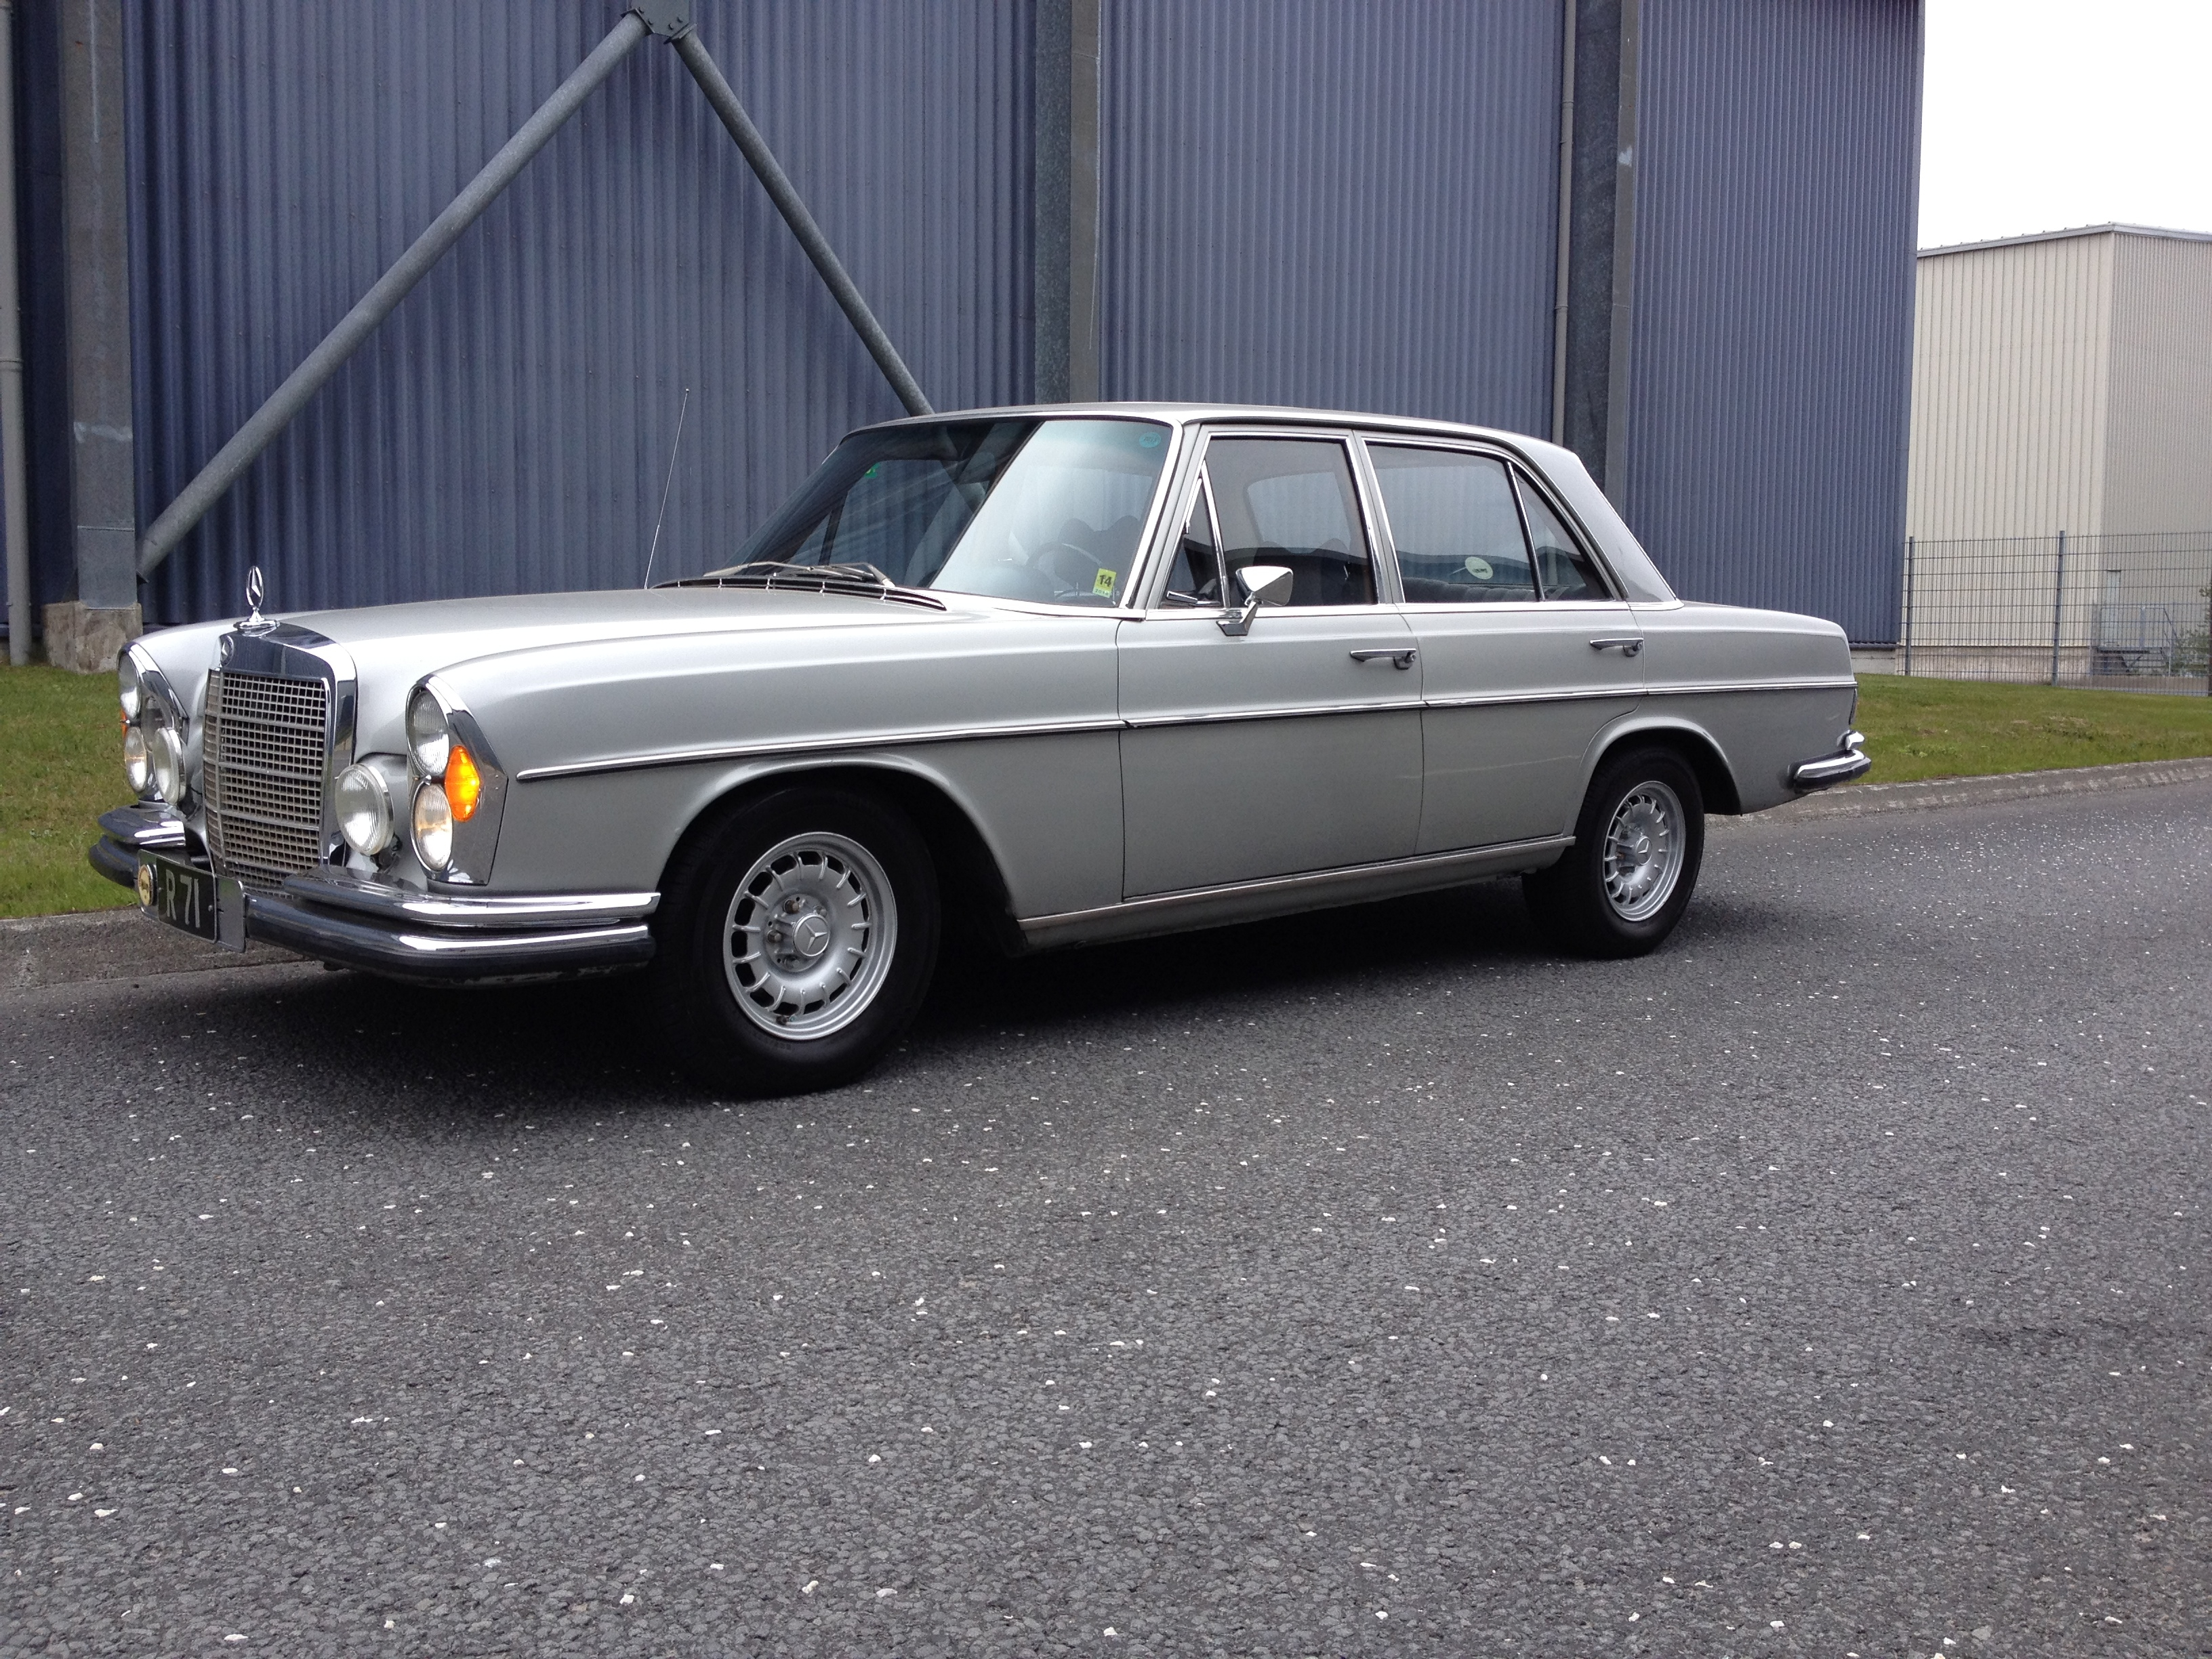 Gmg iceland 1972 mercedes benz 280se specs photos for 1972 mercedes benz